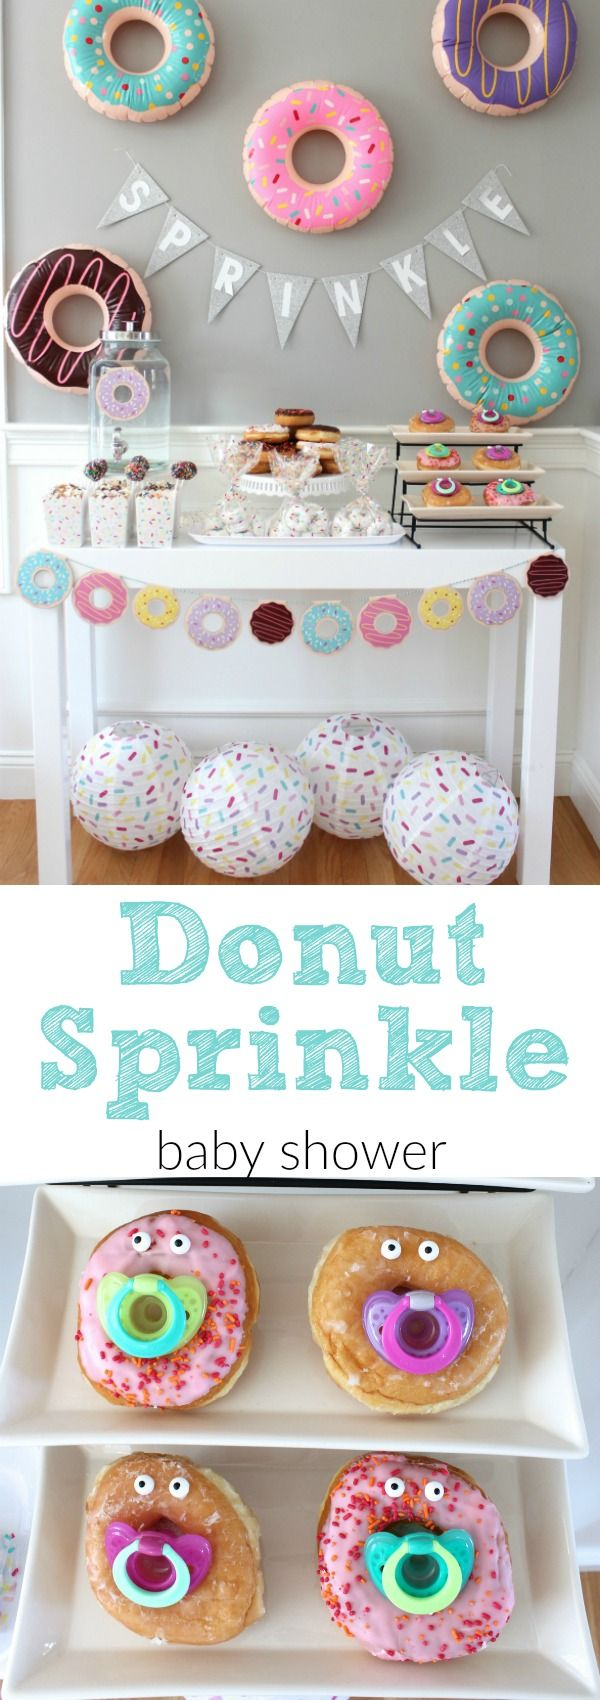 Best 25+ Baby shower themes ideas on Pinterest